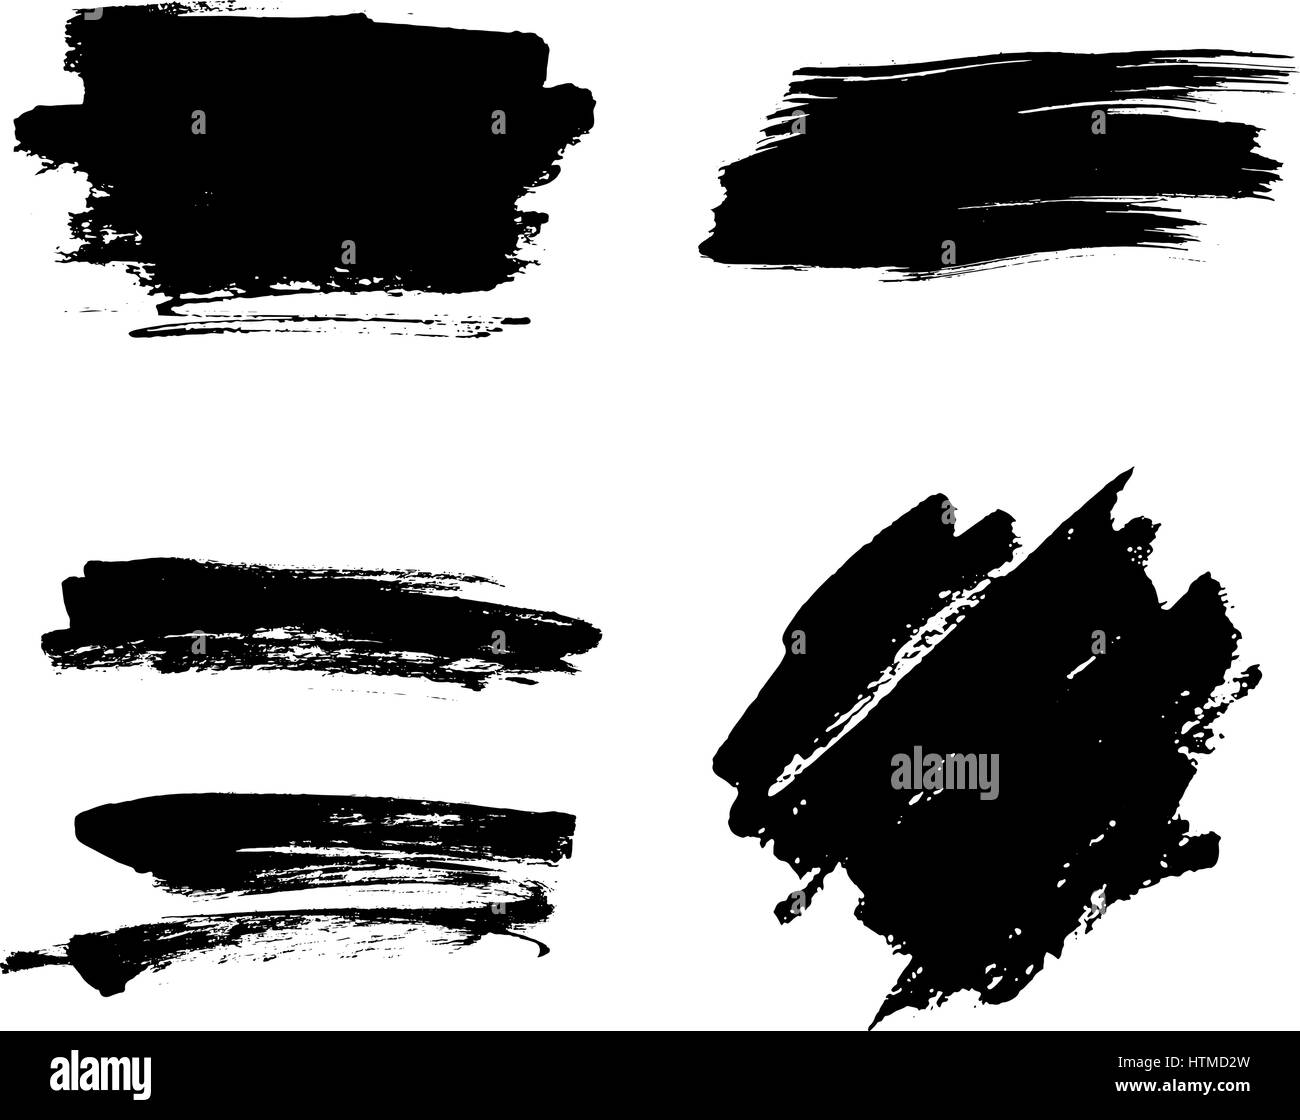 493063a74bba Brush Strokes Stock Vector Images - Alamy